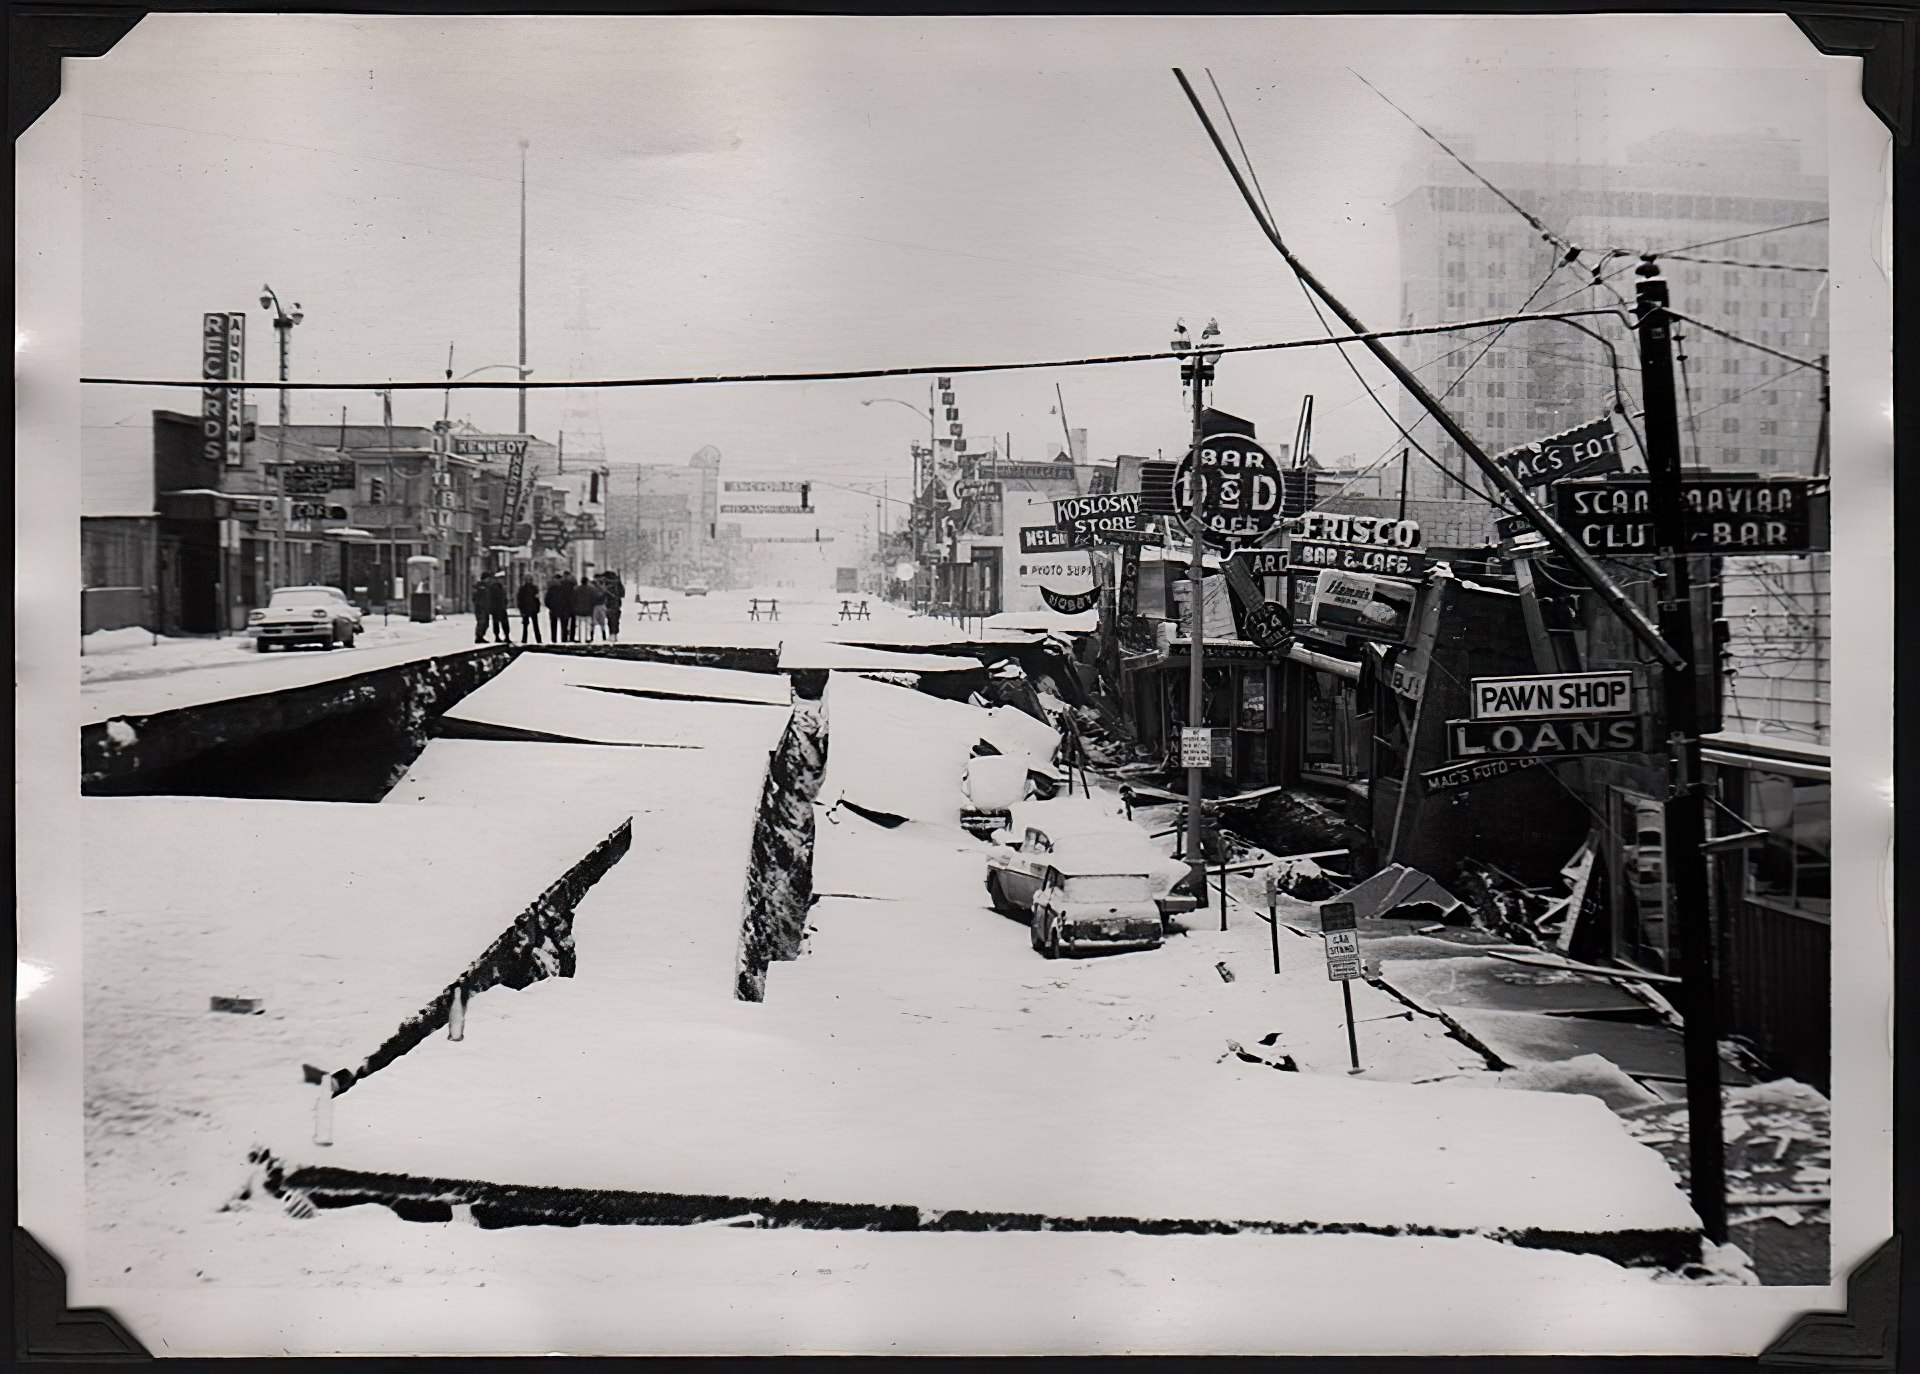 Downtown Anchorage, Alaska's 4th Avenue after the 1964 earthquake